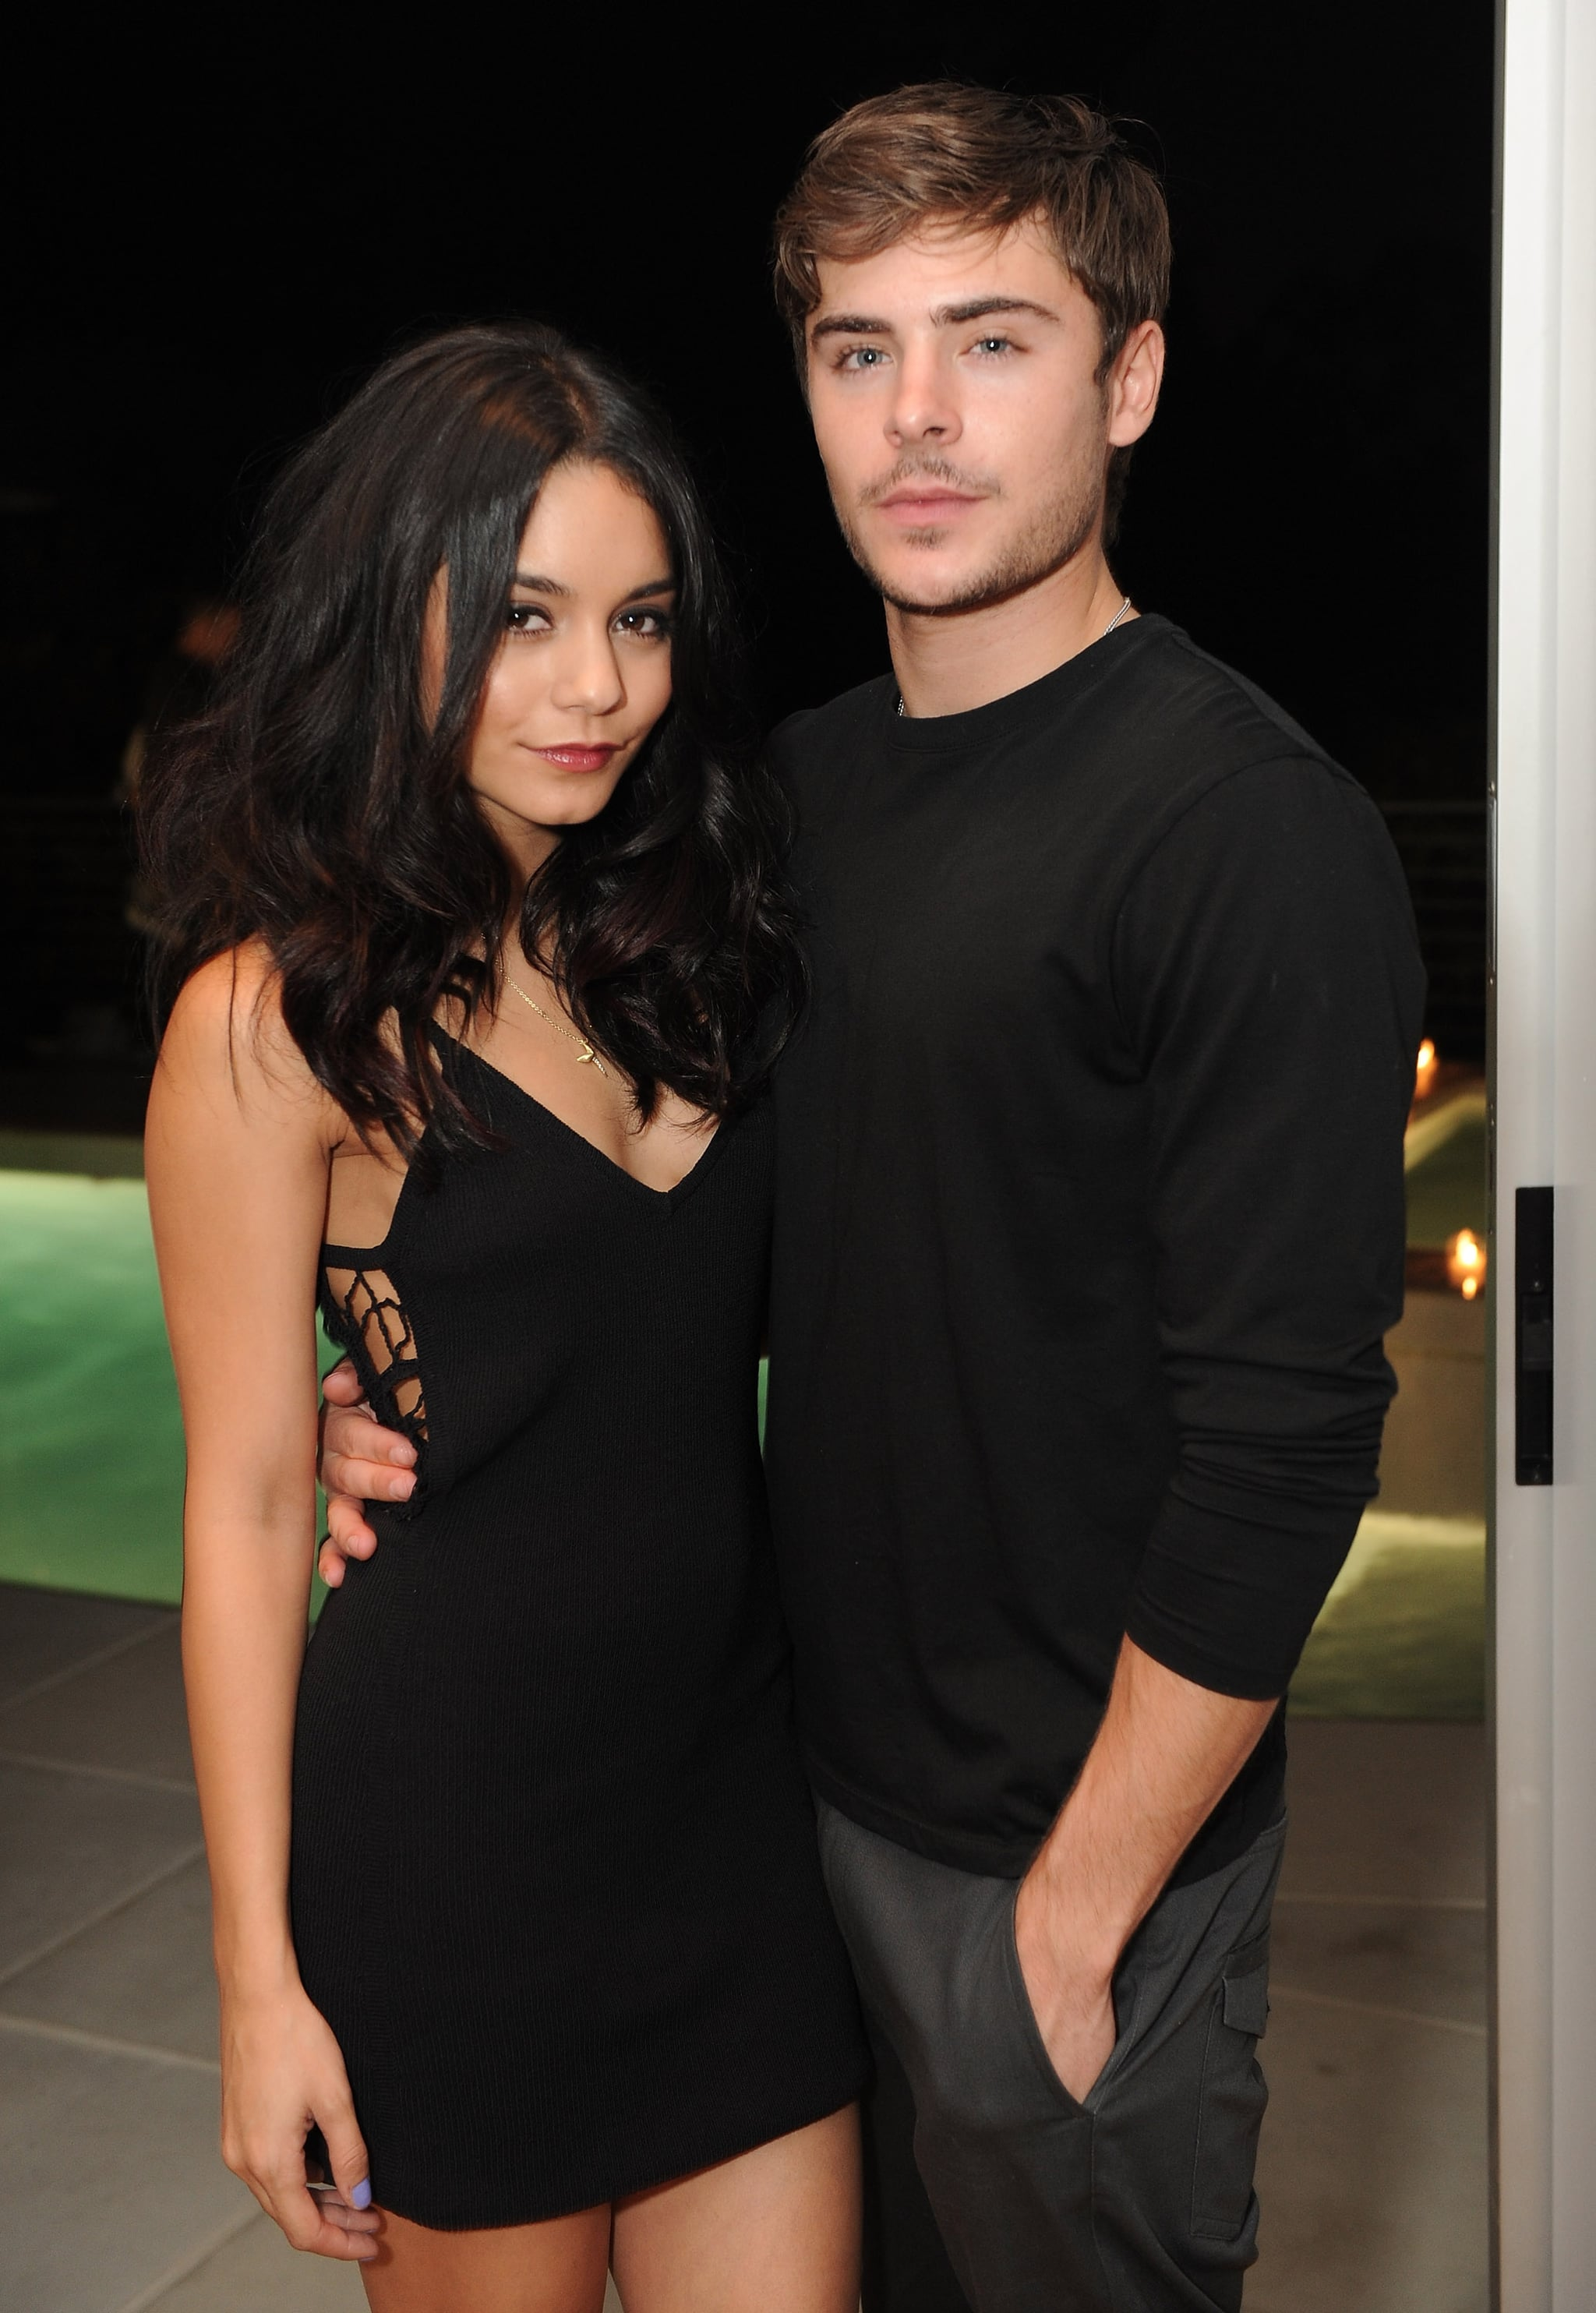 Girlfriend zac efron current Who Is